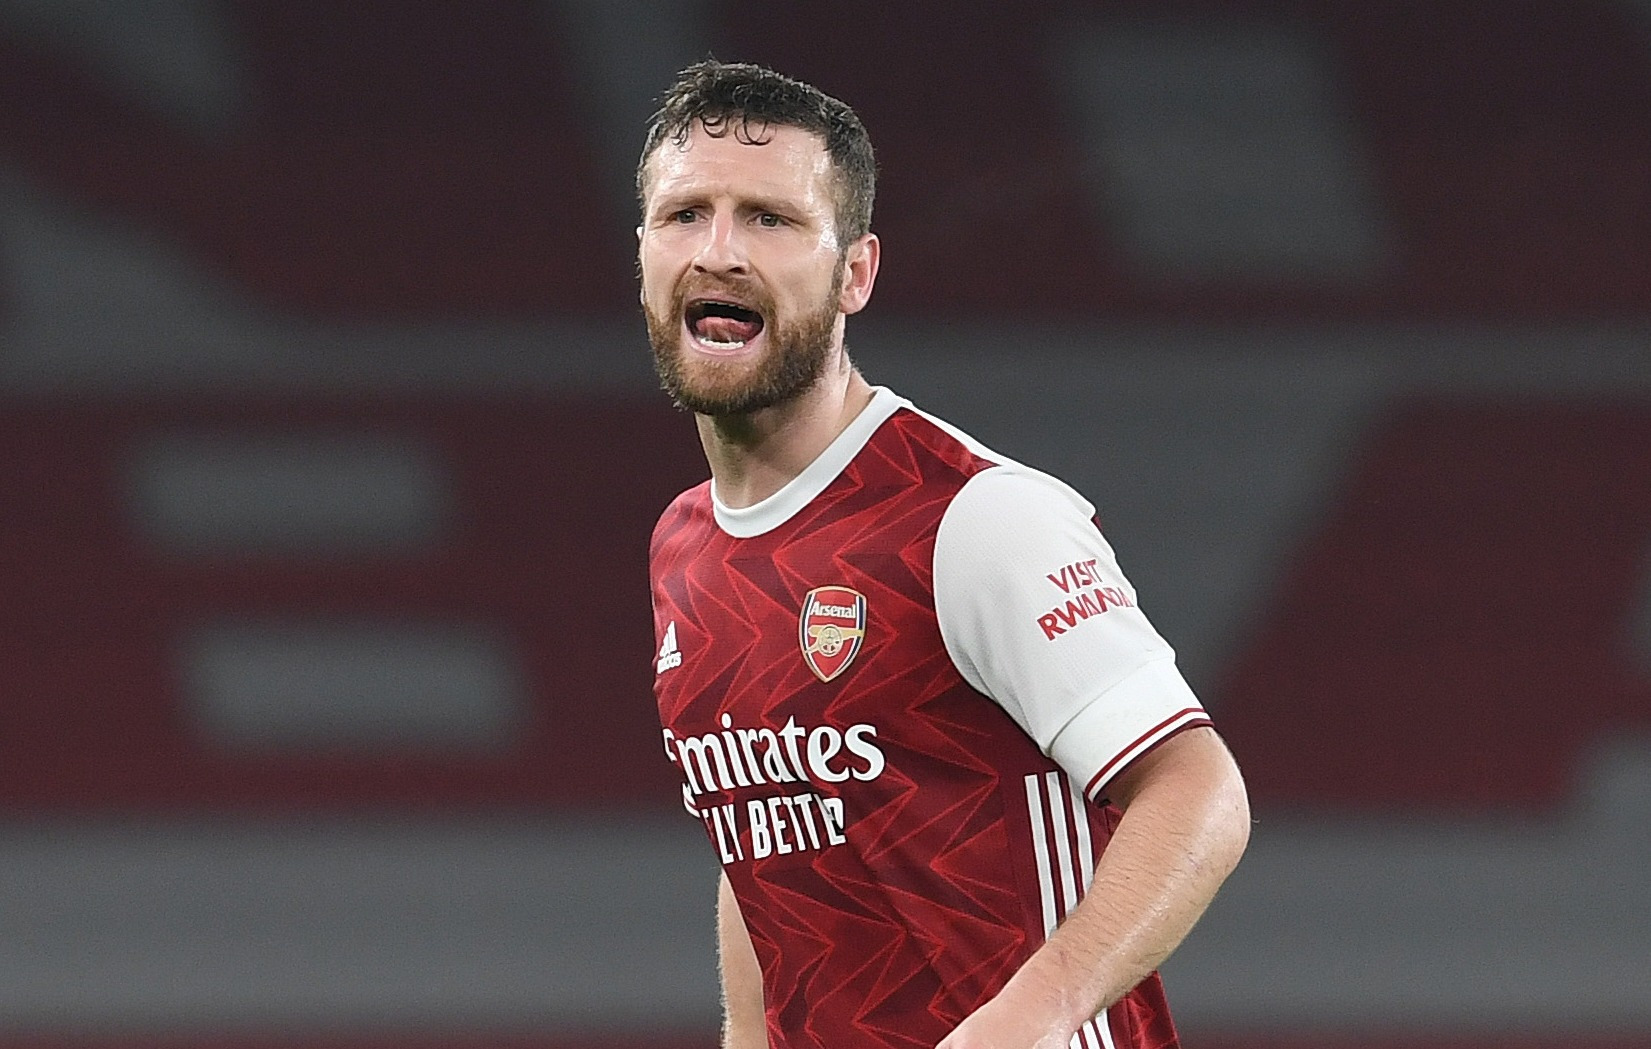 Shkodran Mustafi could be about to leave Arsenal after almost five years at the club